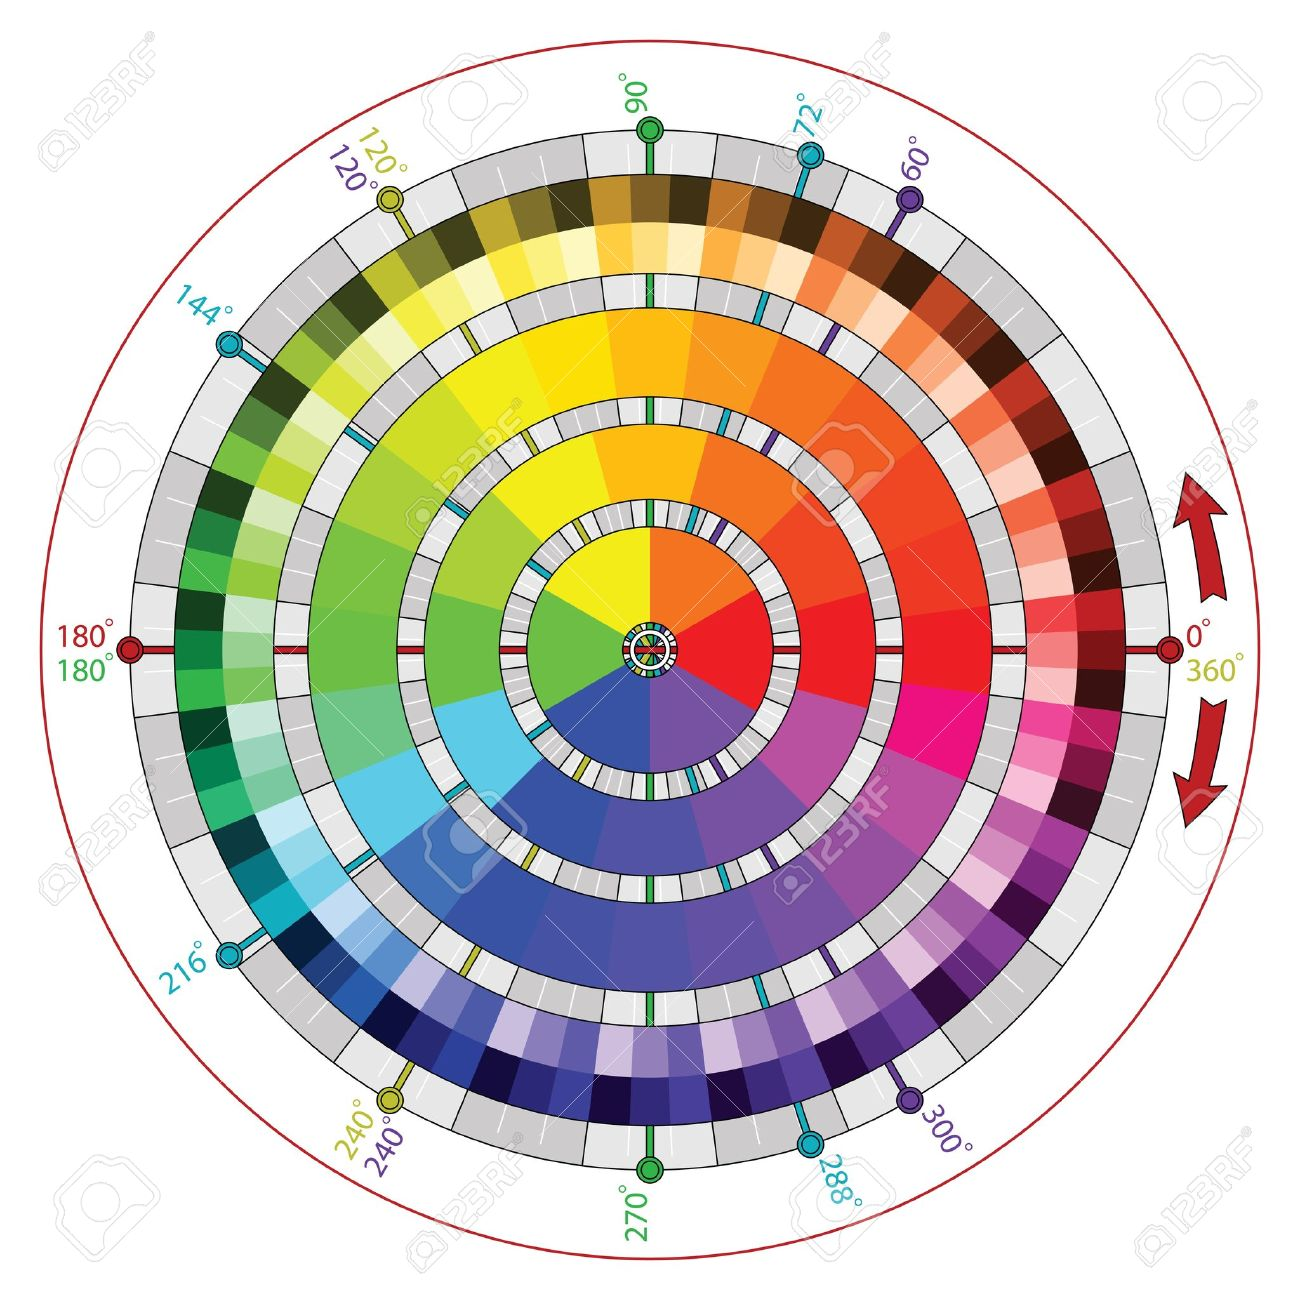 Complementary color wheel for artists Stock Vector - 18134846